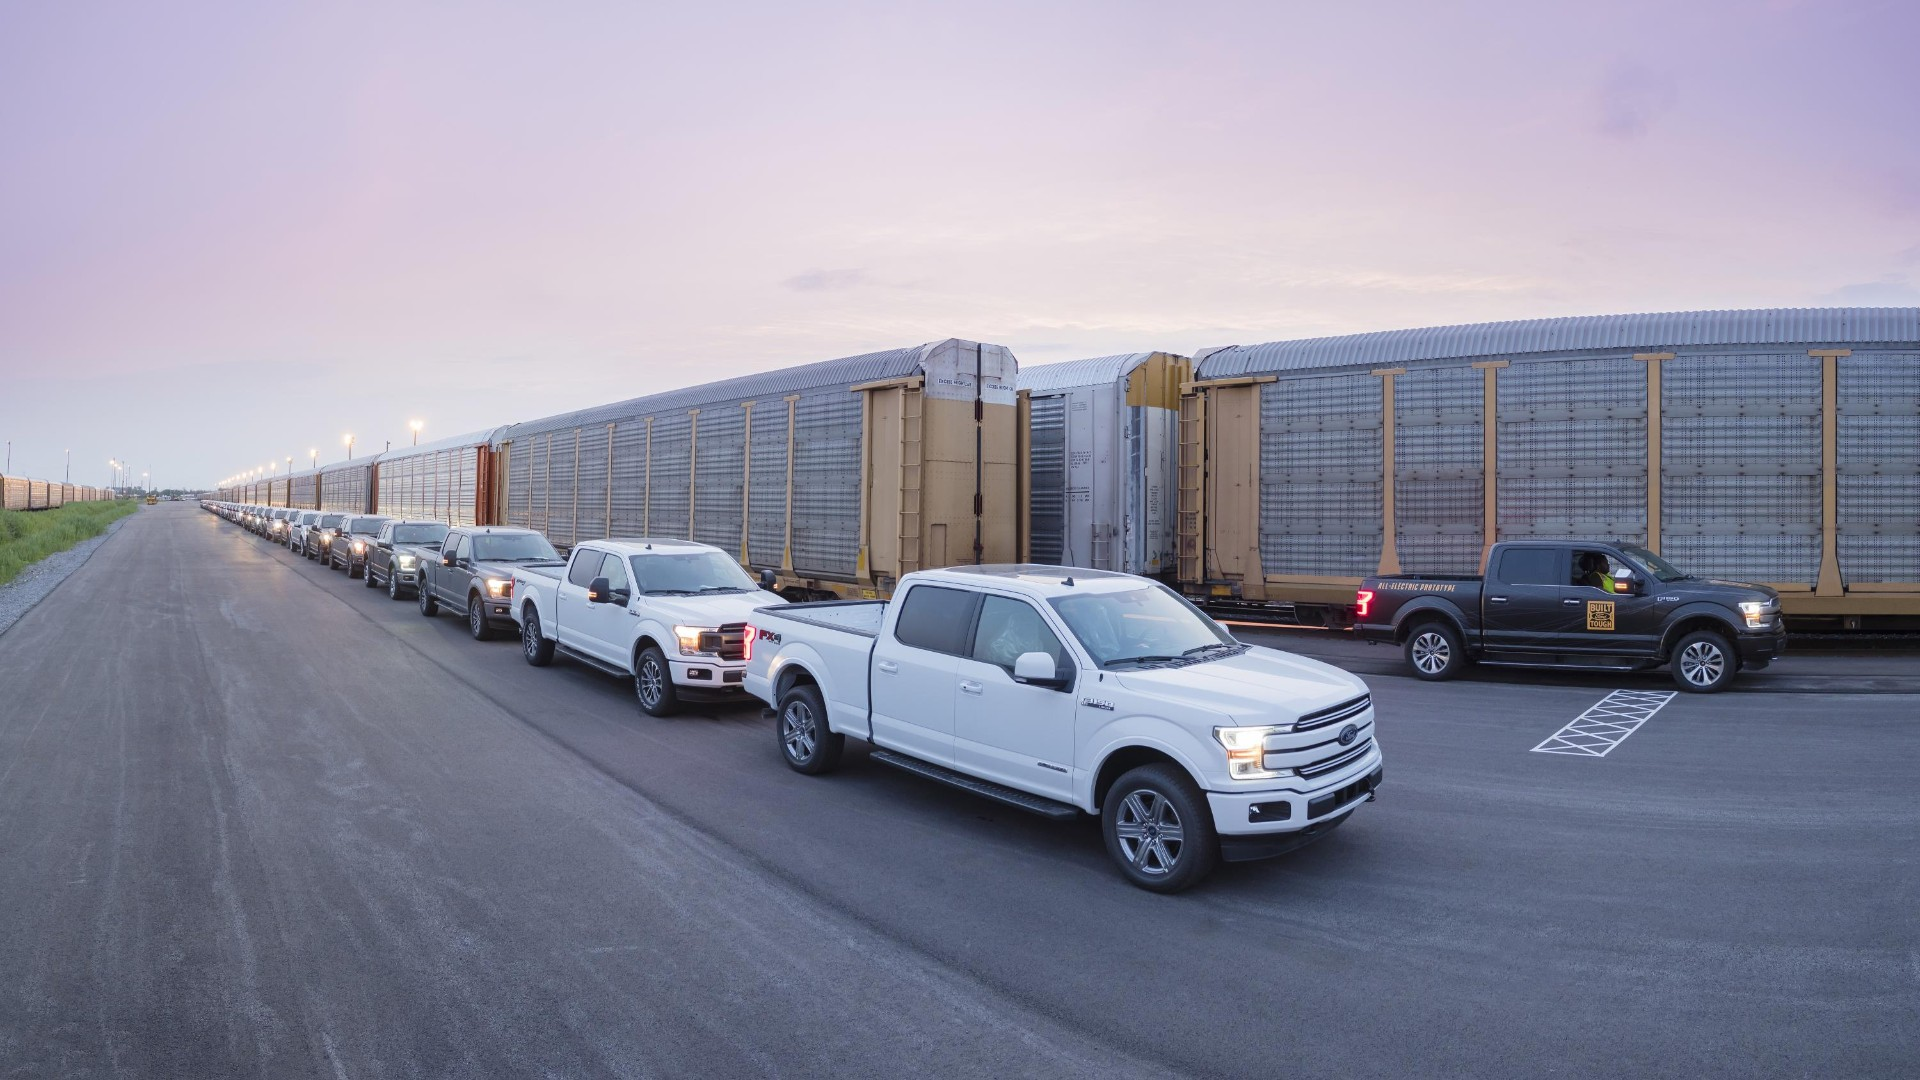 Electric F-150 Prototype Tows 1 Million Pounds - Equipment